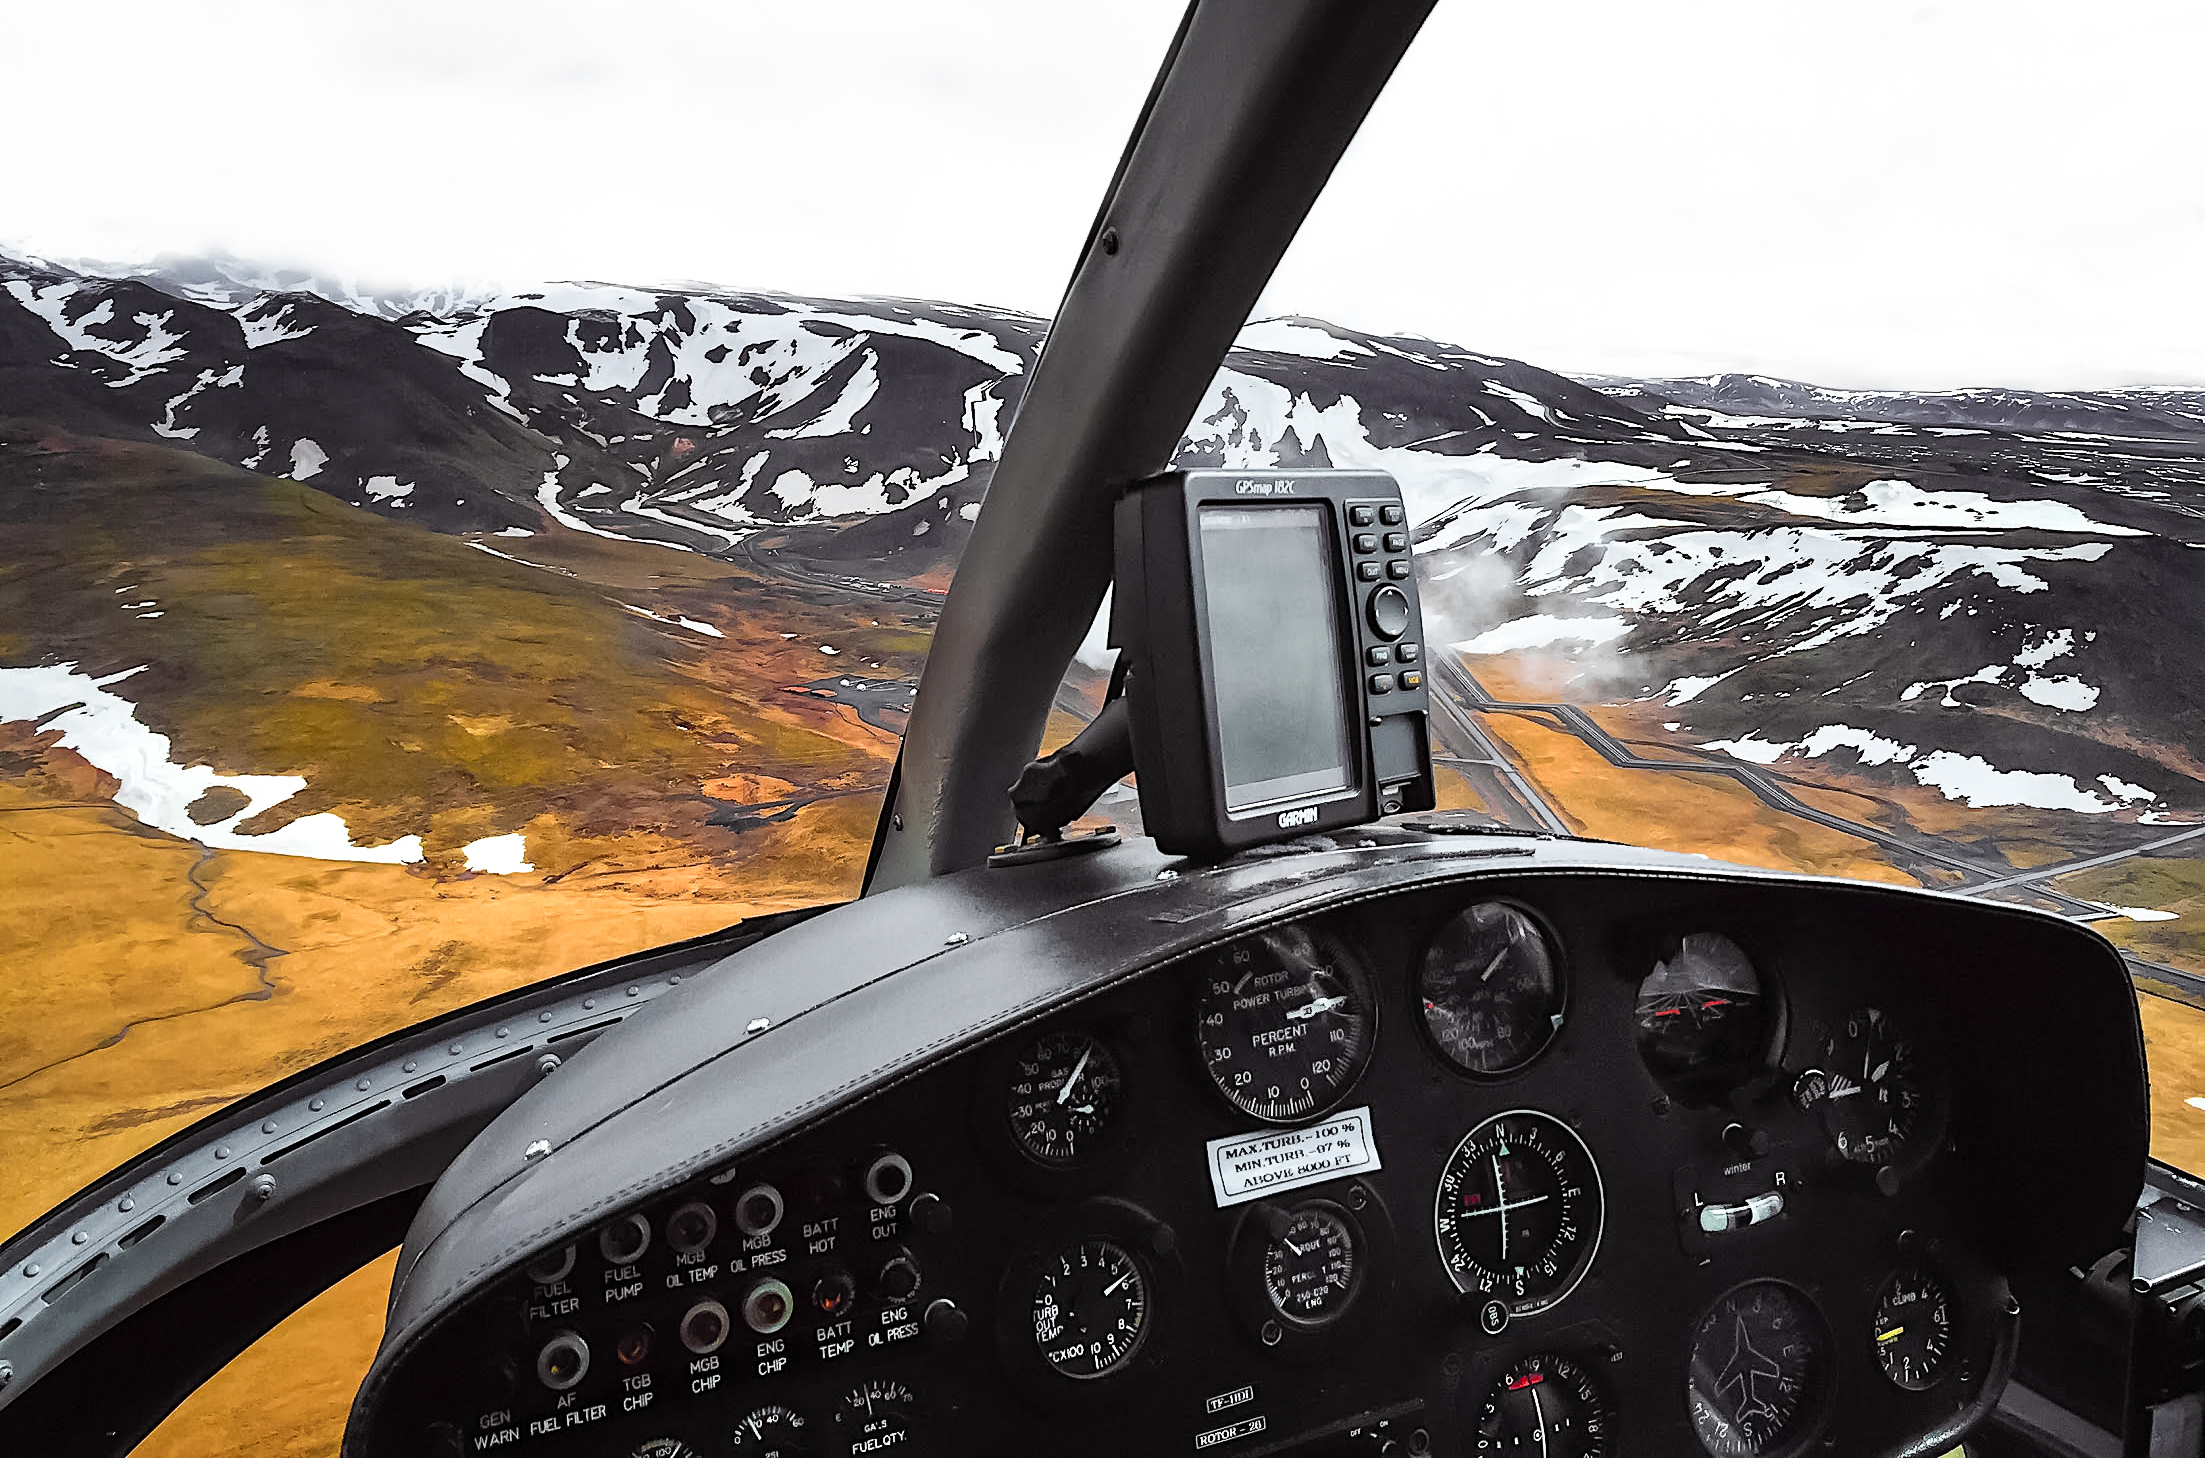 Best-halal-travel-blog-Iceland-helicopter-tour